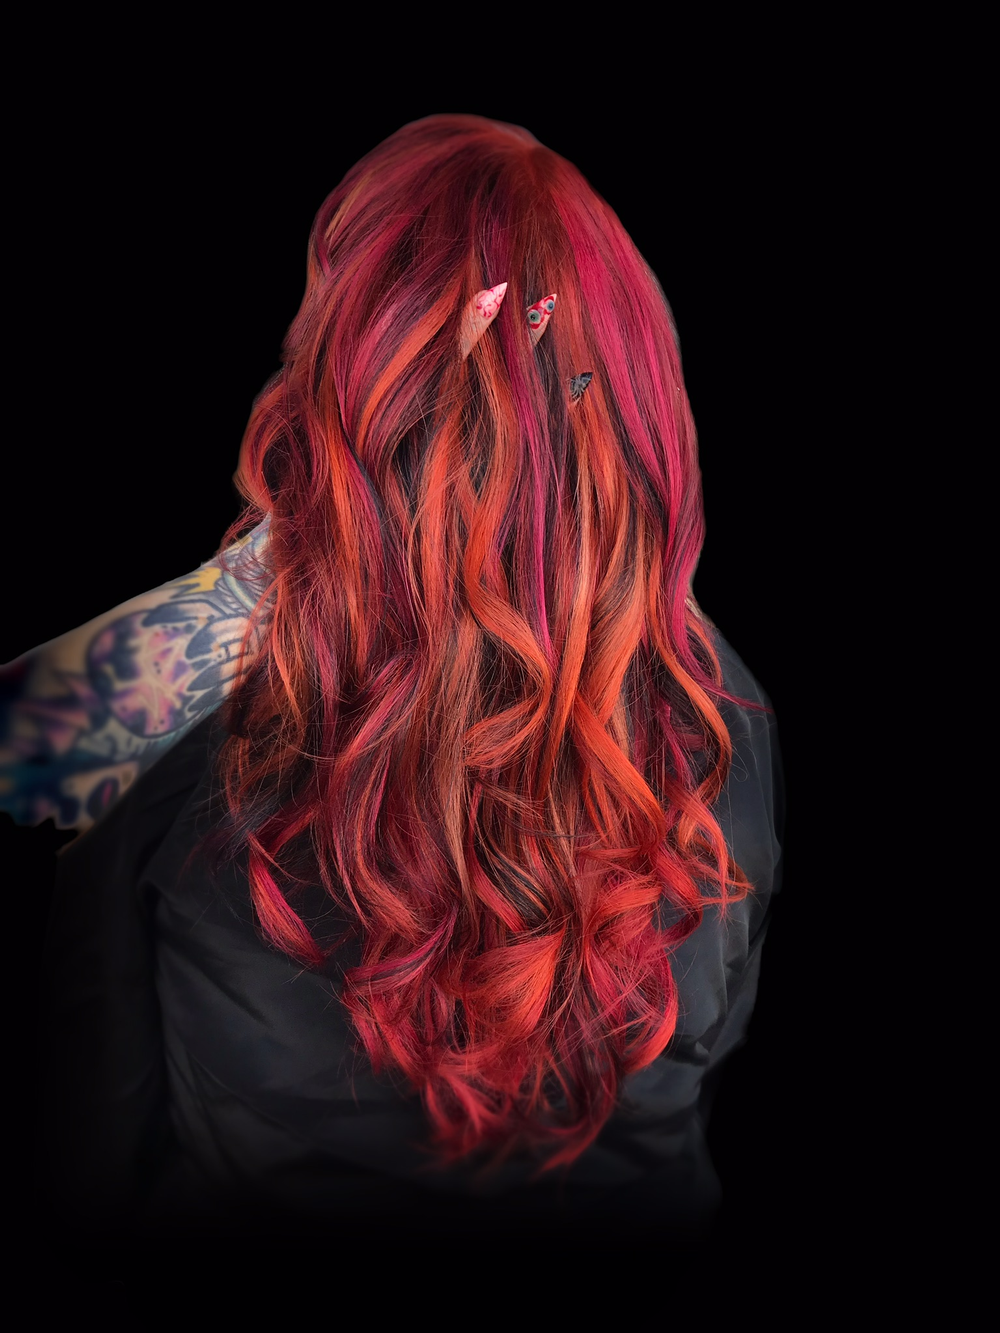 Hair color by Kat Chase.